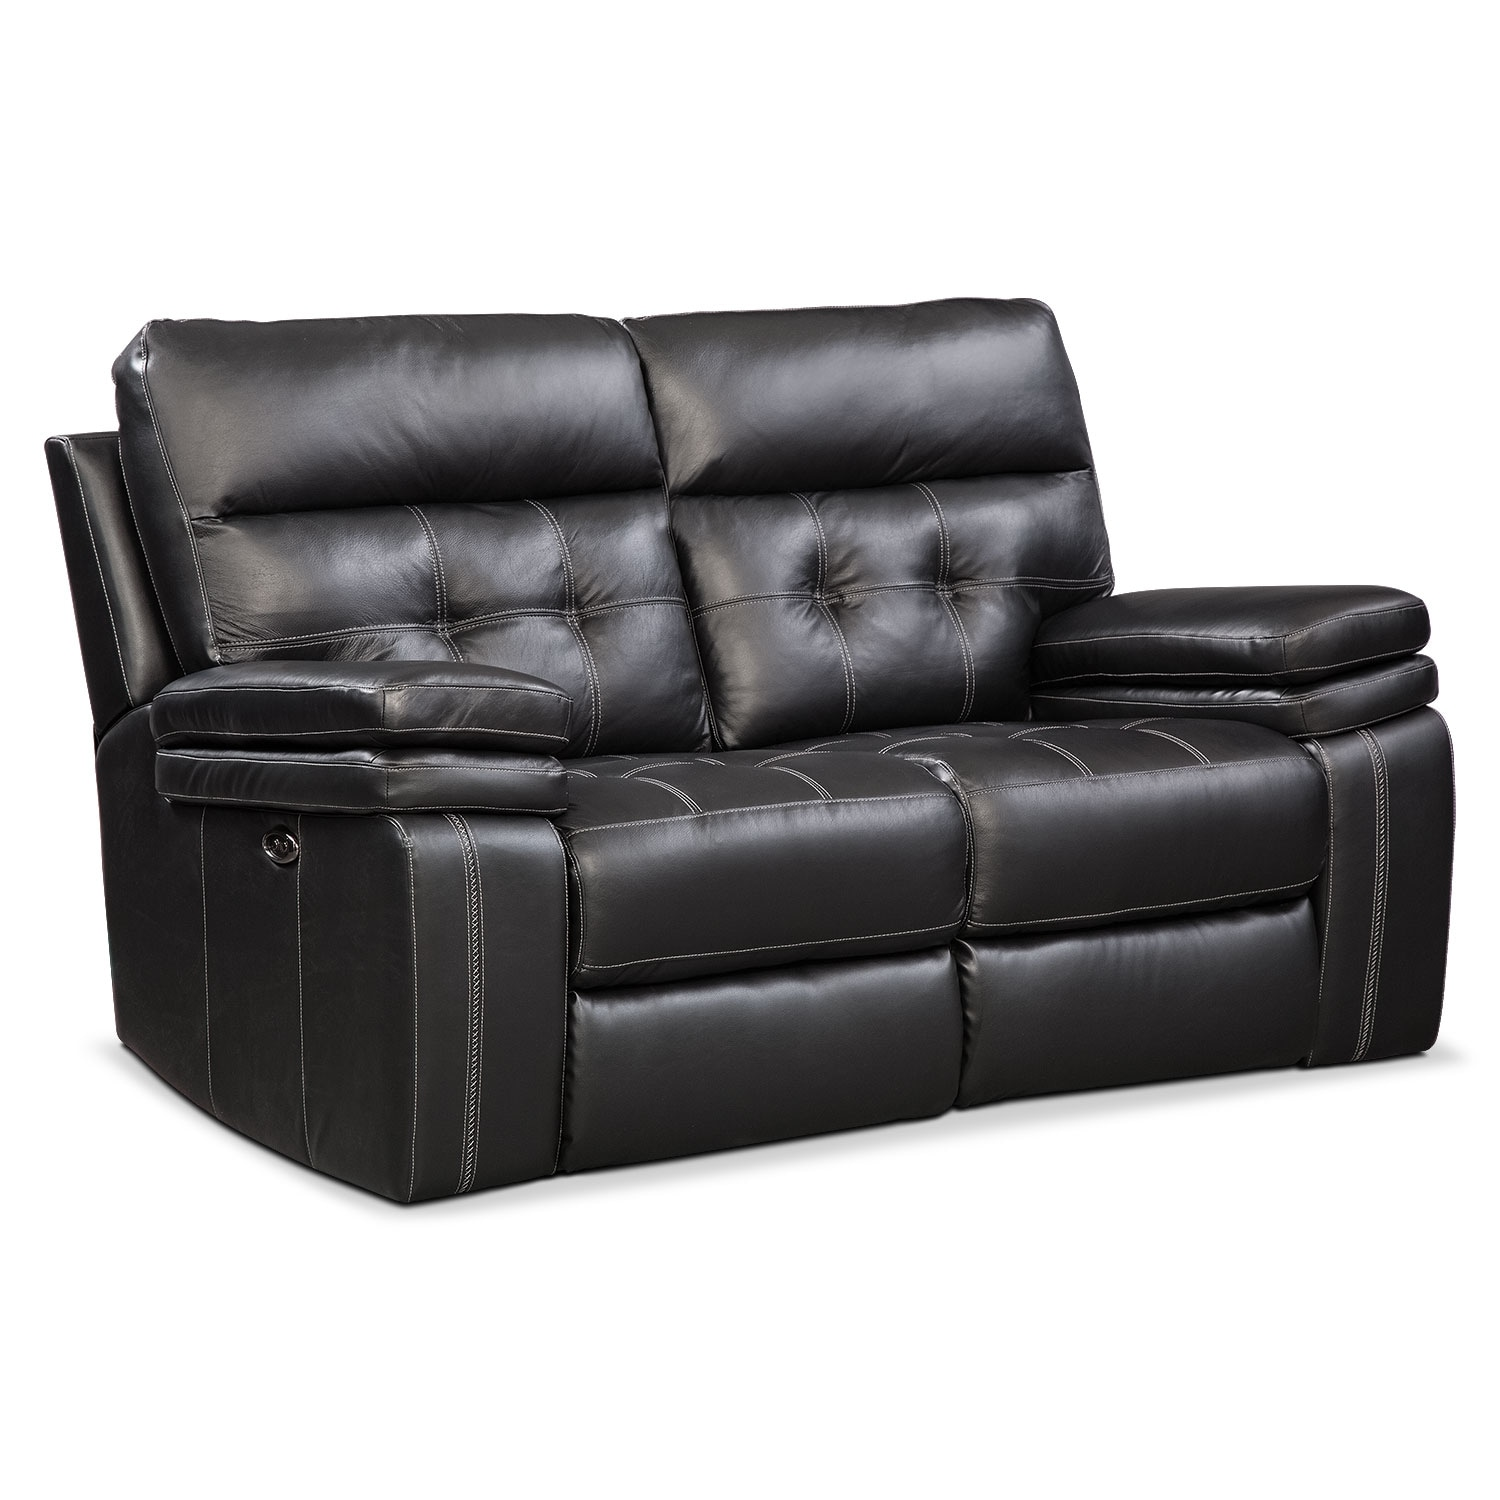 Cheap Recliner Sofas For Sale Black Leather Reclining: Brisco Power Reclining Sofa, Reclining Loveseat And Glider